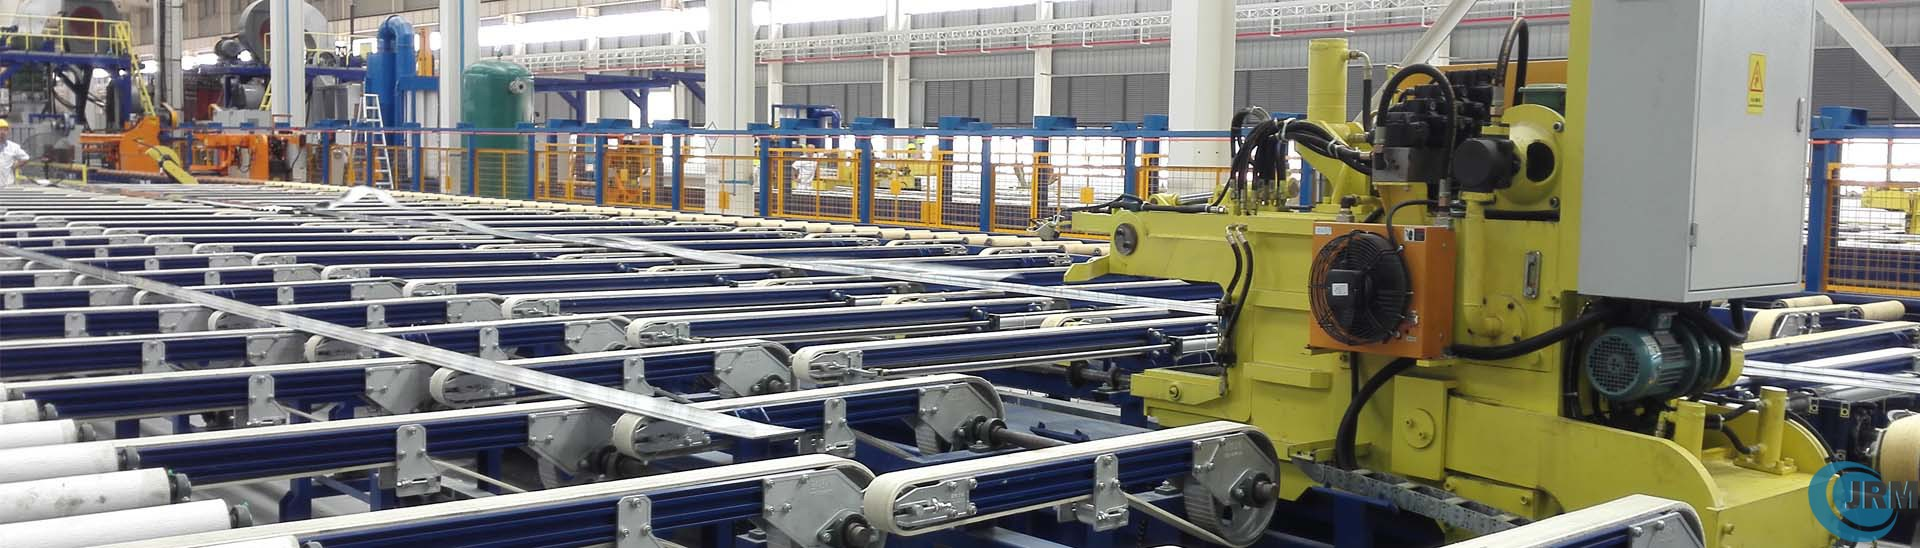 aluminum-extrusion-handling-table